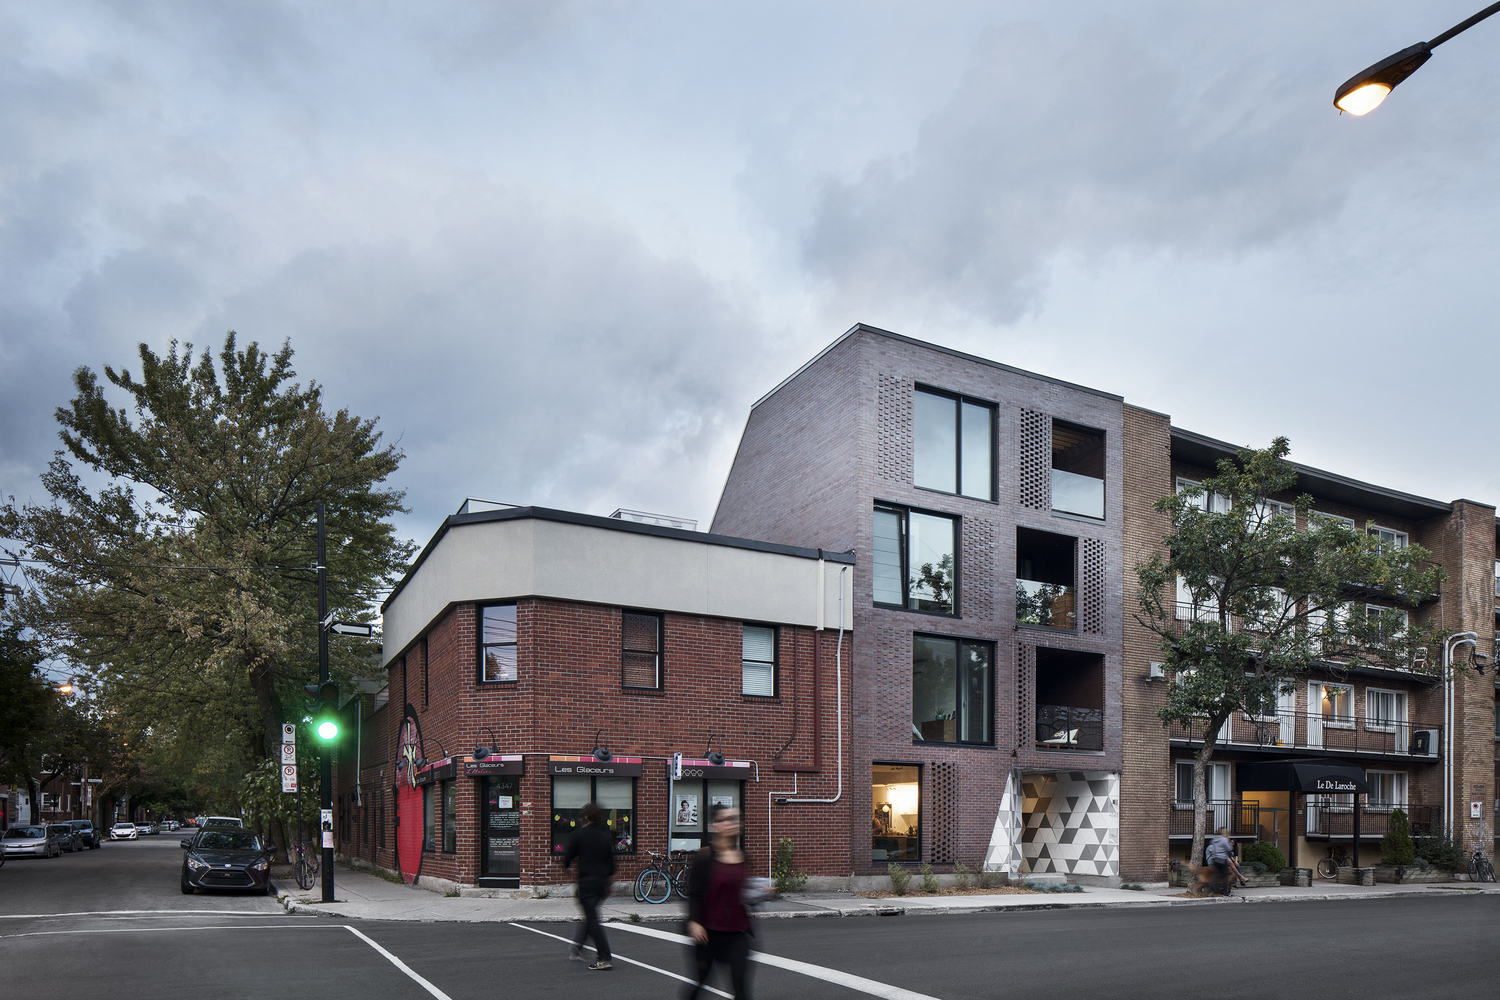 A new building next to an existing commercial space in Montreal, via  ArchDaily